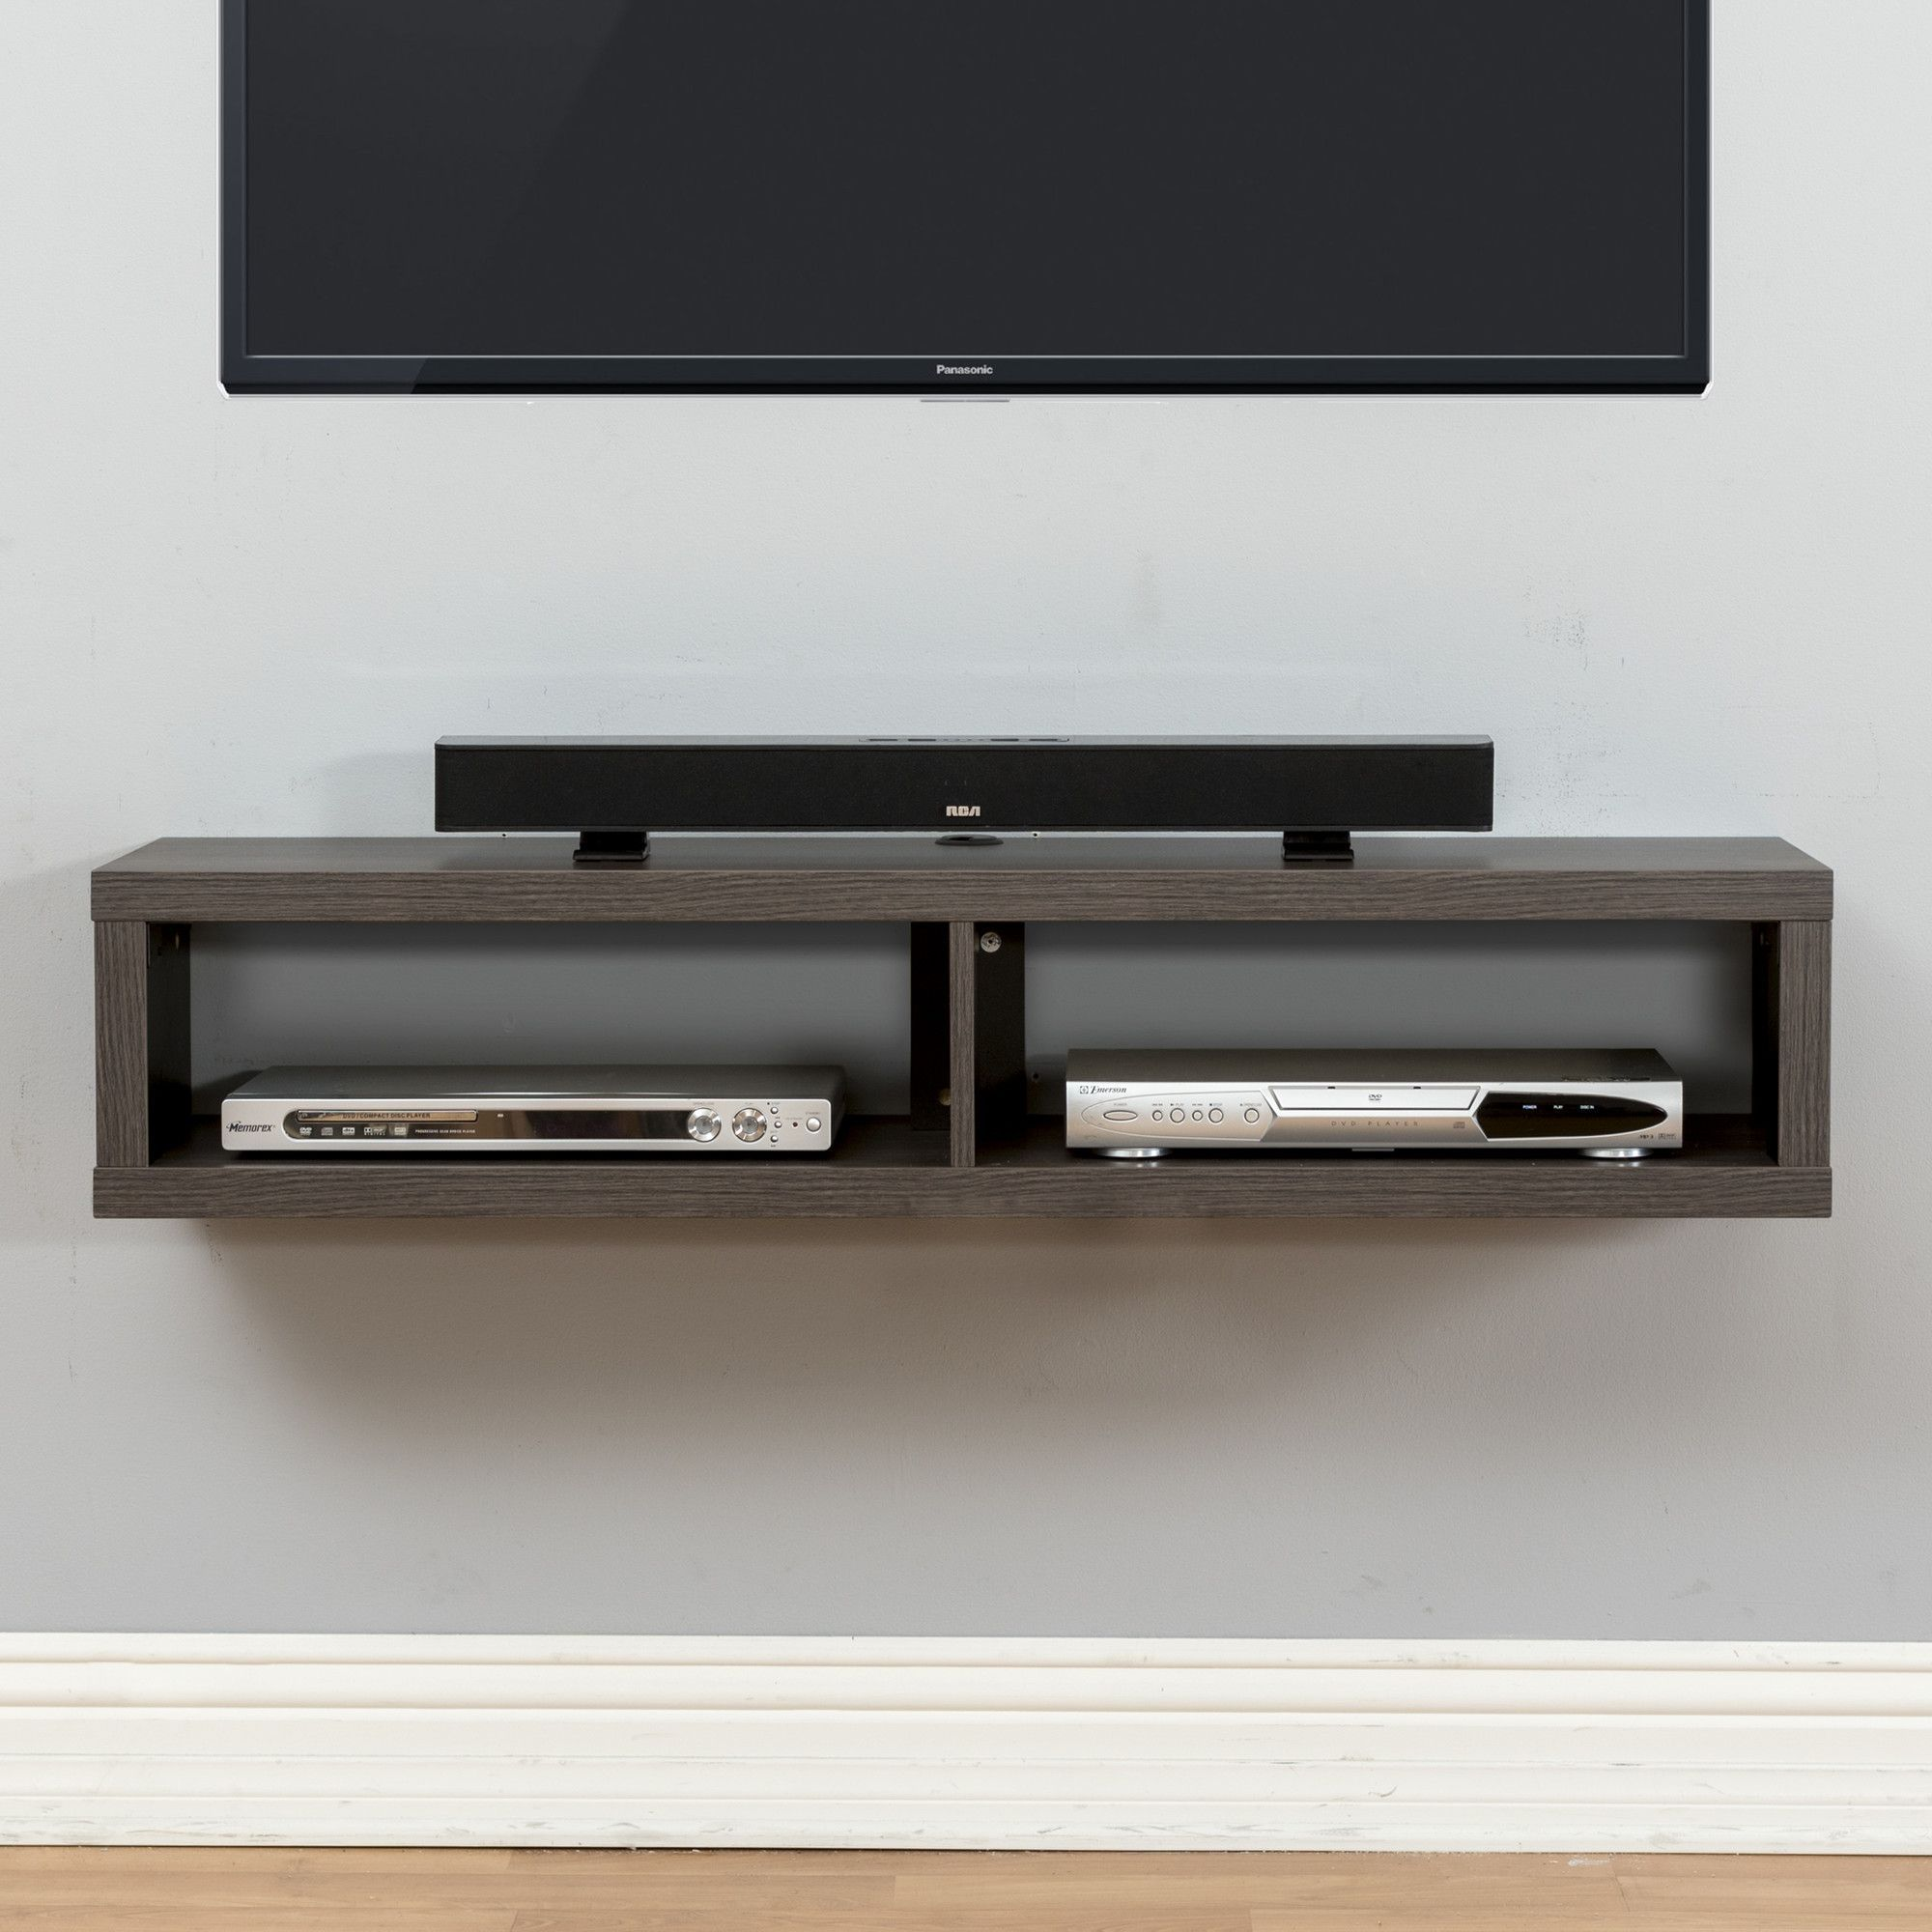 shallow wall mounted stand for tvs home decor floating component shelf holds audio video components and sound bar compliment television lbs comes with mounting hardware ledge